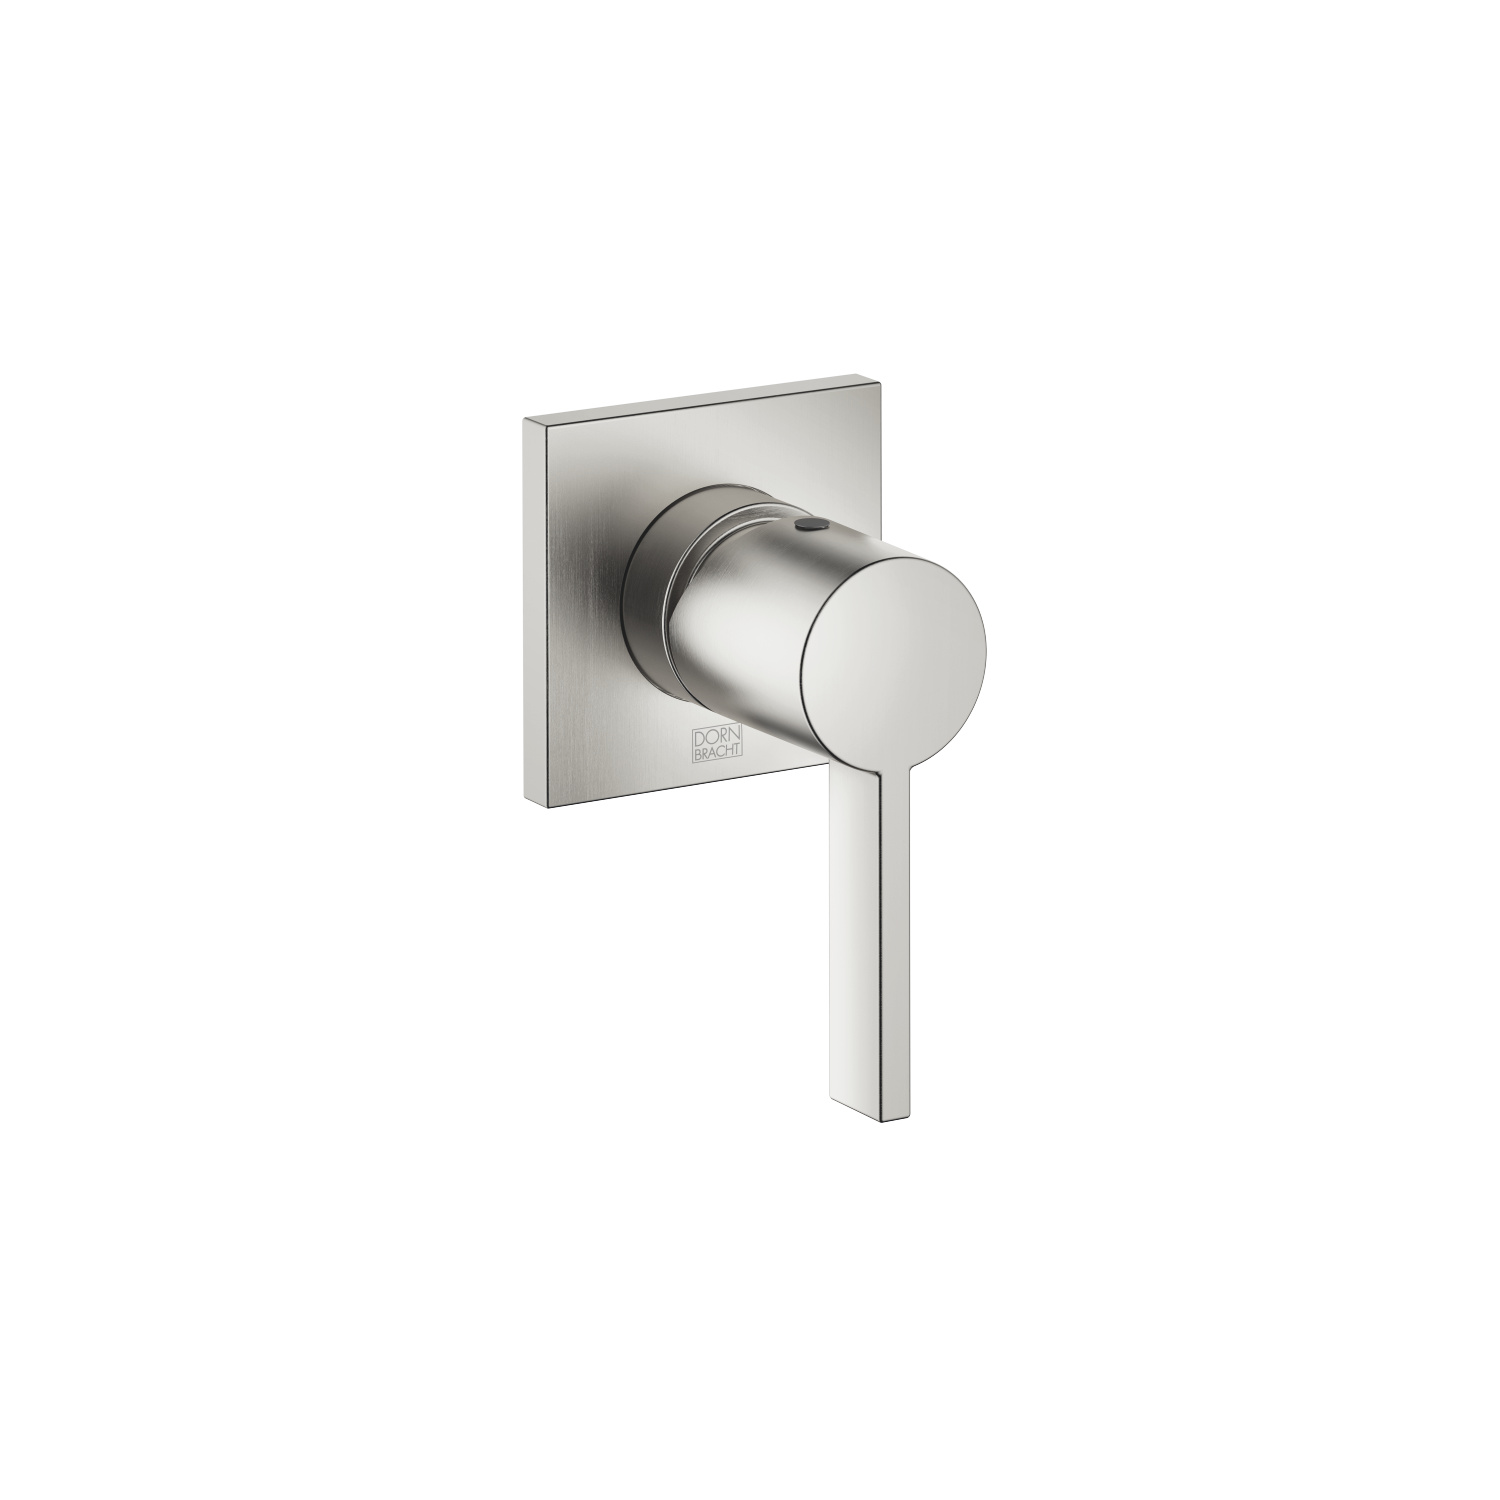 Concealed single-lever mixer with cover plate - platinum matt